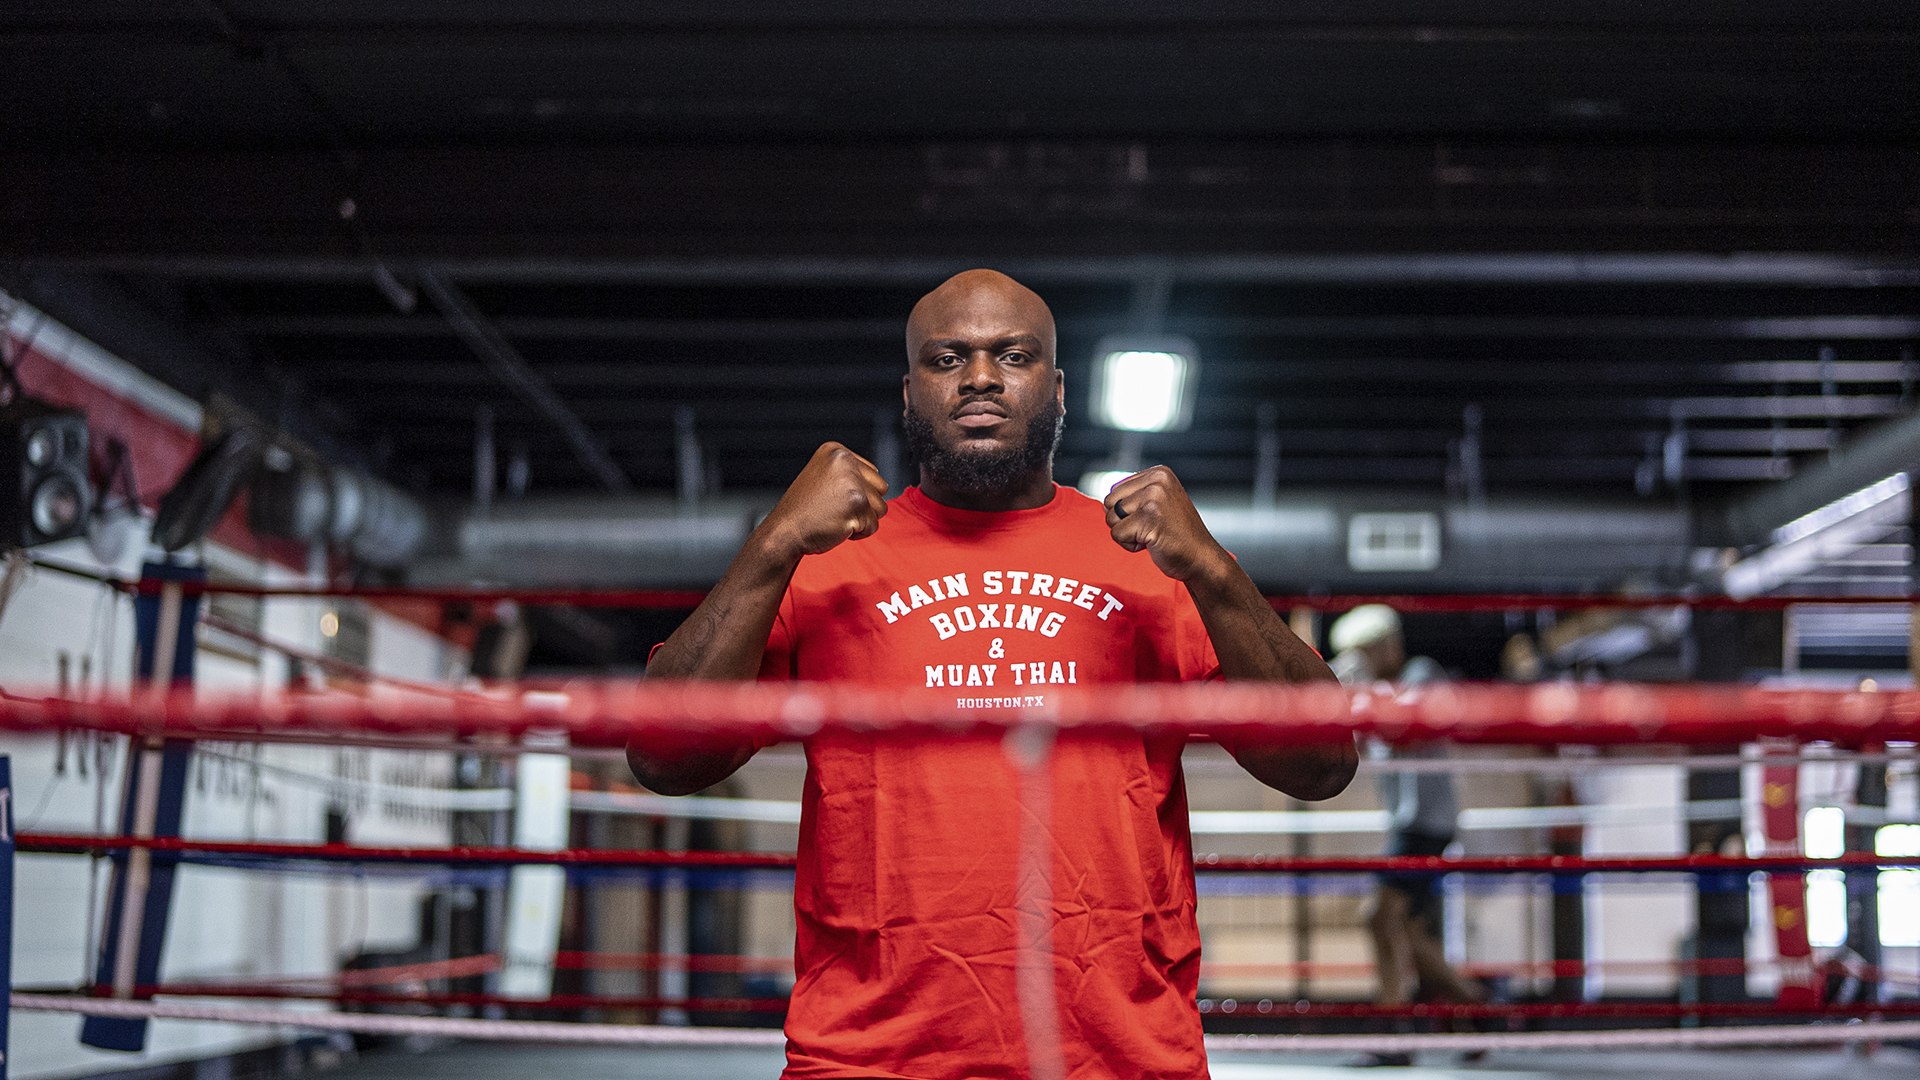 Derrick Lewis poses for a picture at Main Street Boxing and Muay Thai in Houston, Texas (photo by Nolan Walker/Zuffa LLC)